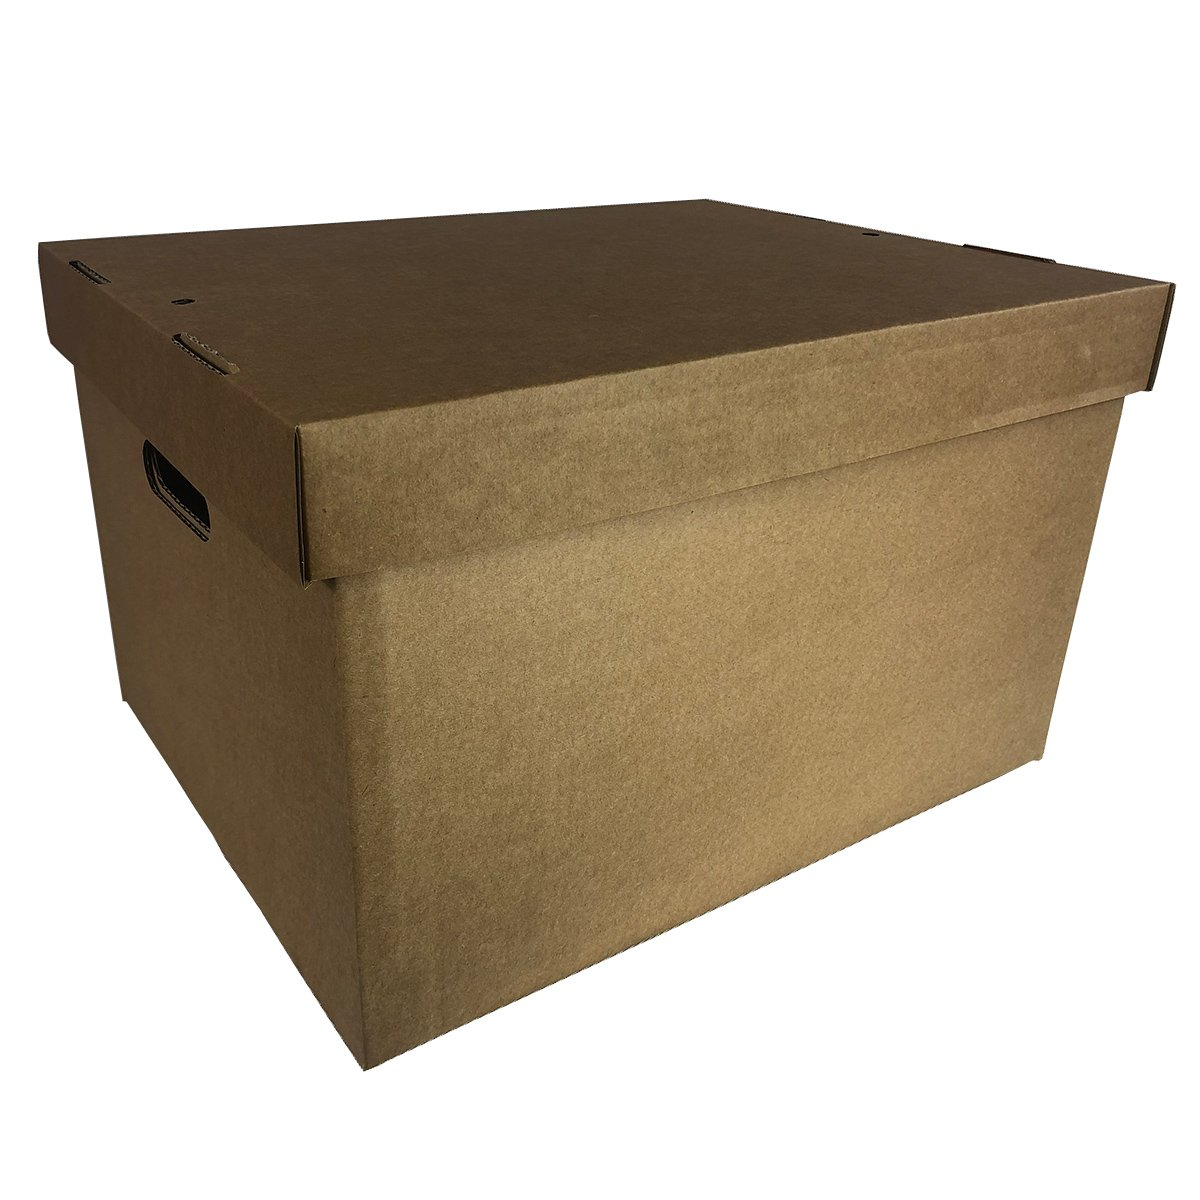 5 x Pop Up Collapsible Office Storage Archive Cardboard Box Filing with Lid and Carrying Handles A4 Box and Lid Pack of 5 (16